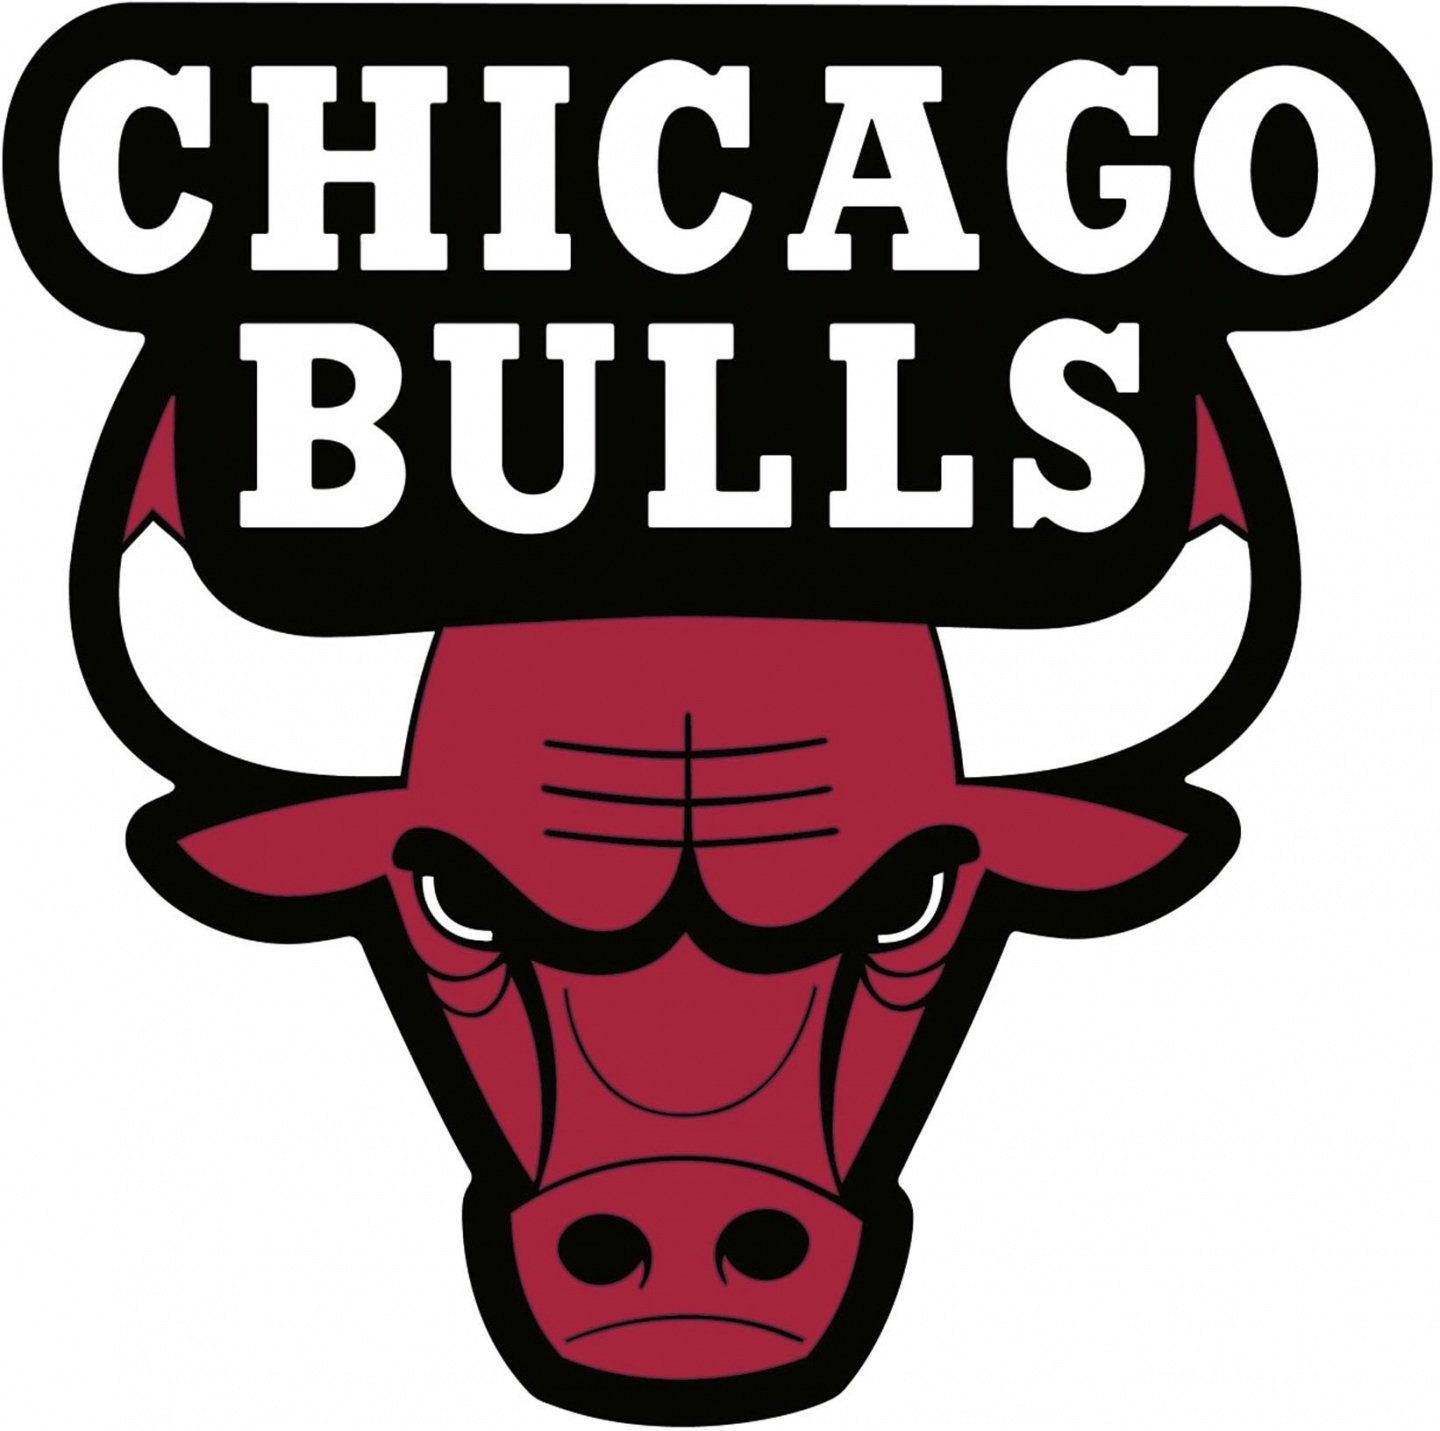 1440x1431 Collection Of Chicago Bulls Clipart High Quality, Free